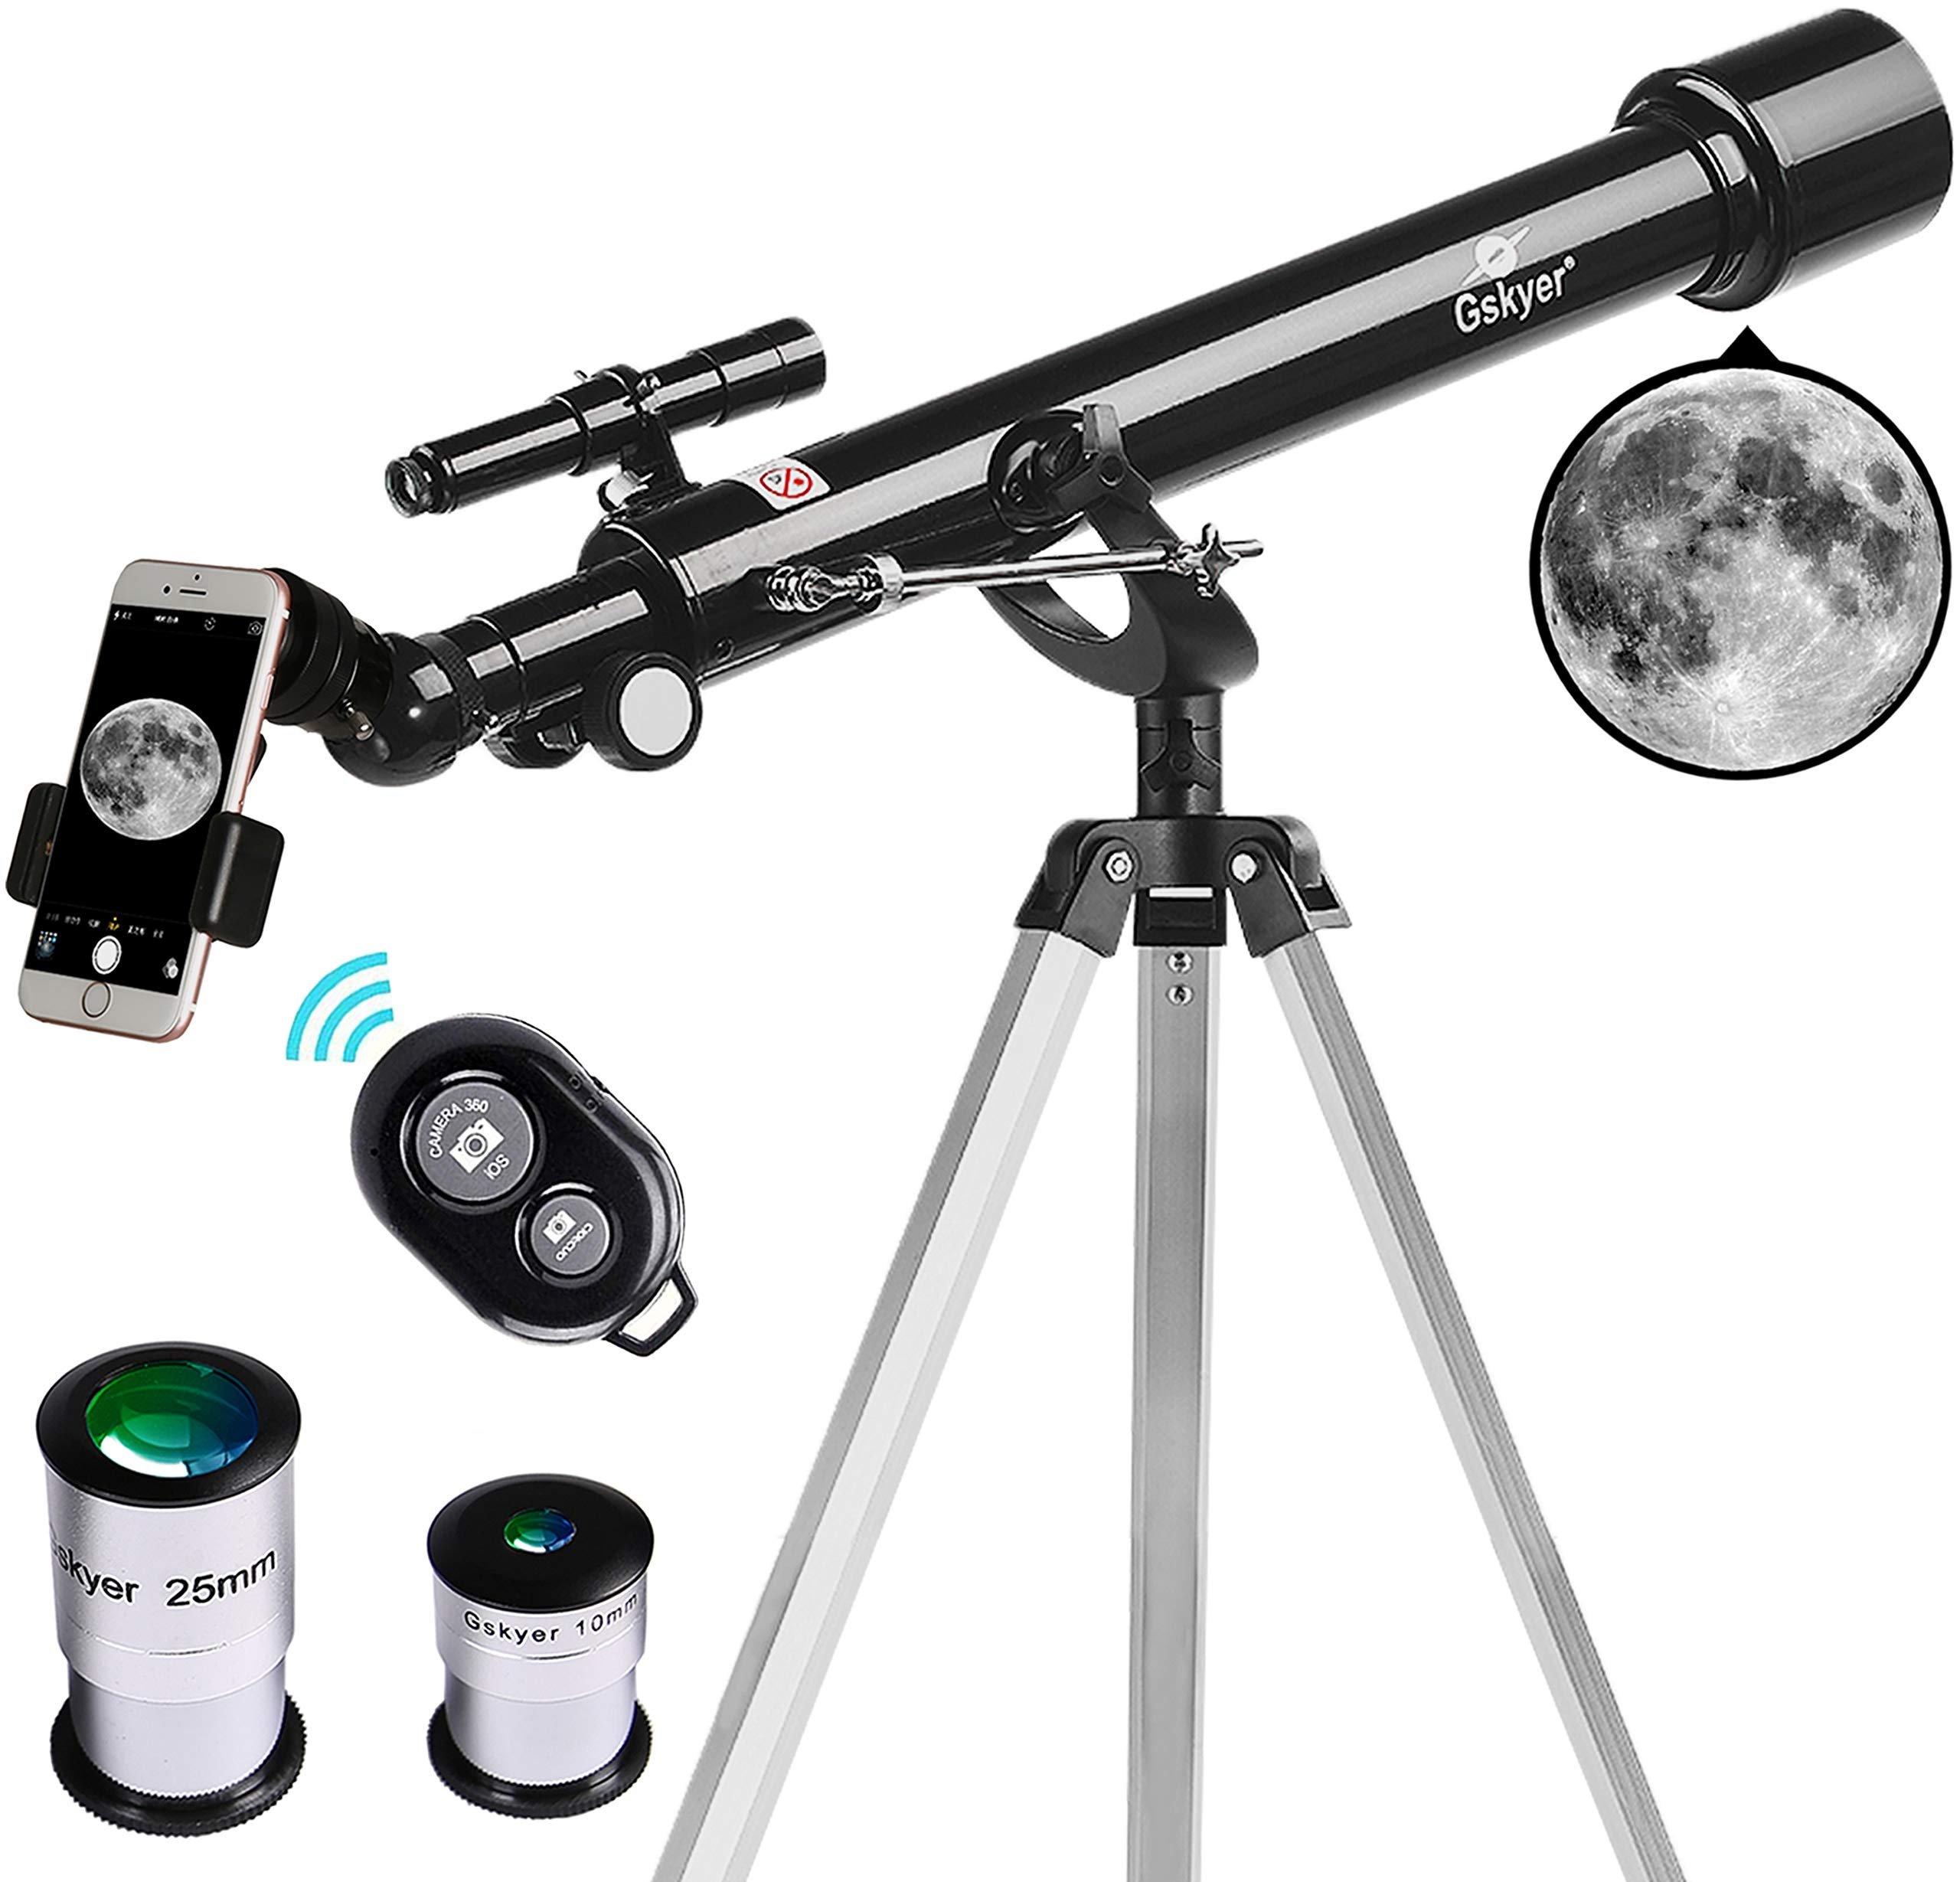 Telescope, 60mm Aperture 700mm AZ Mount Astronomy Refractor Telescope,Travel Scope with Smartphone Adapter and Wireless Remote for Kids & Beginner by Gskyer